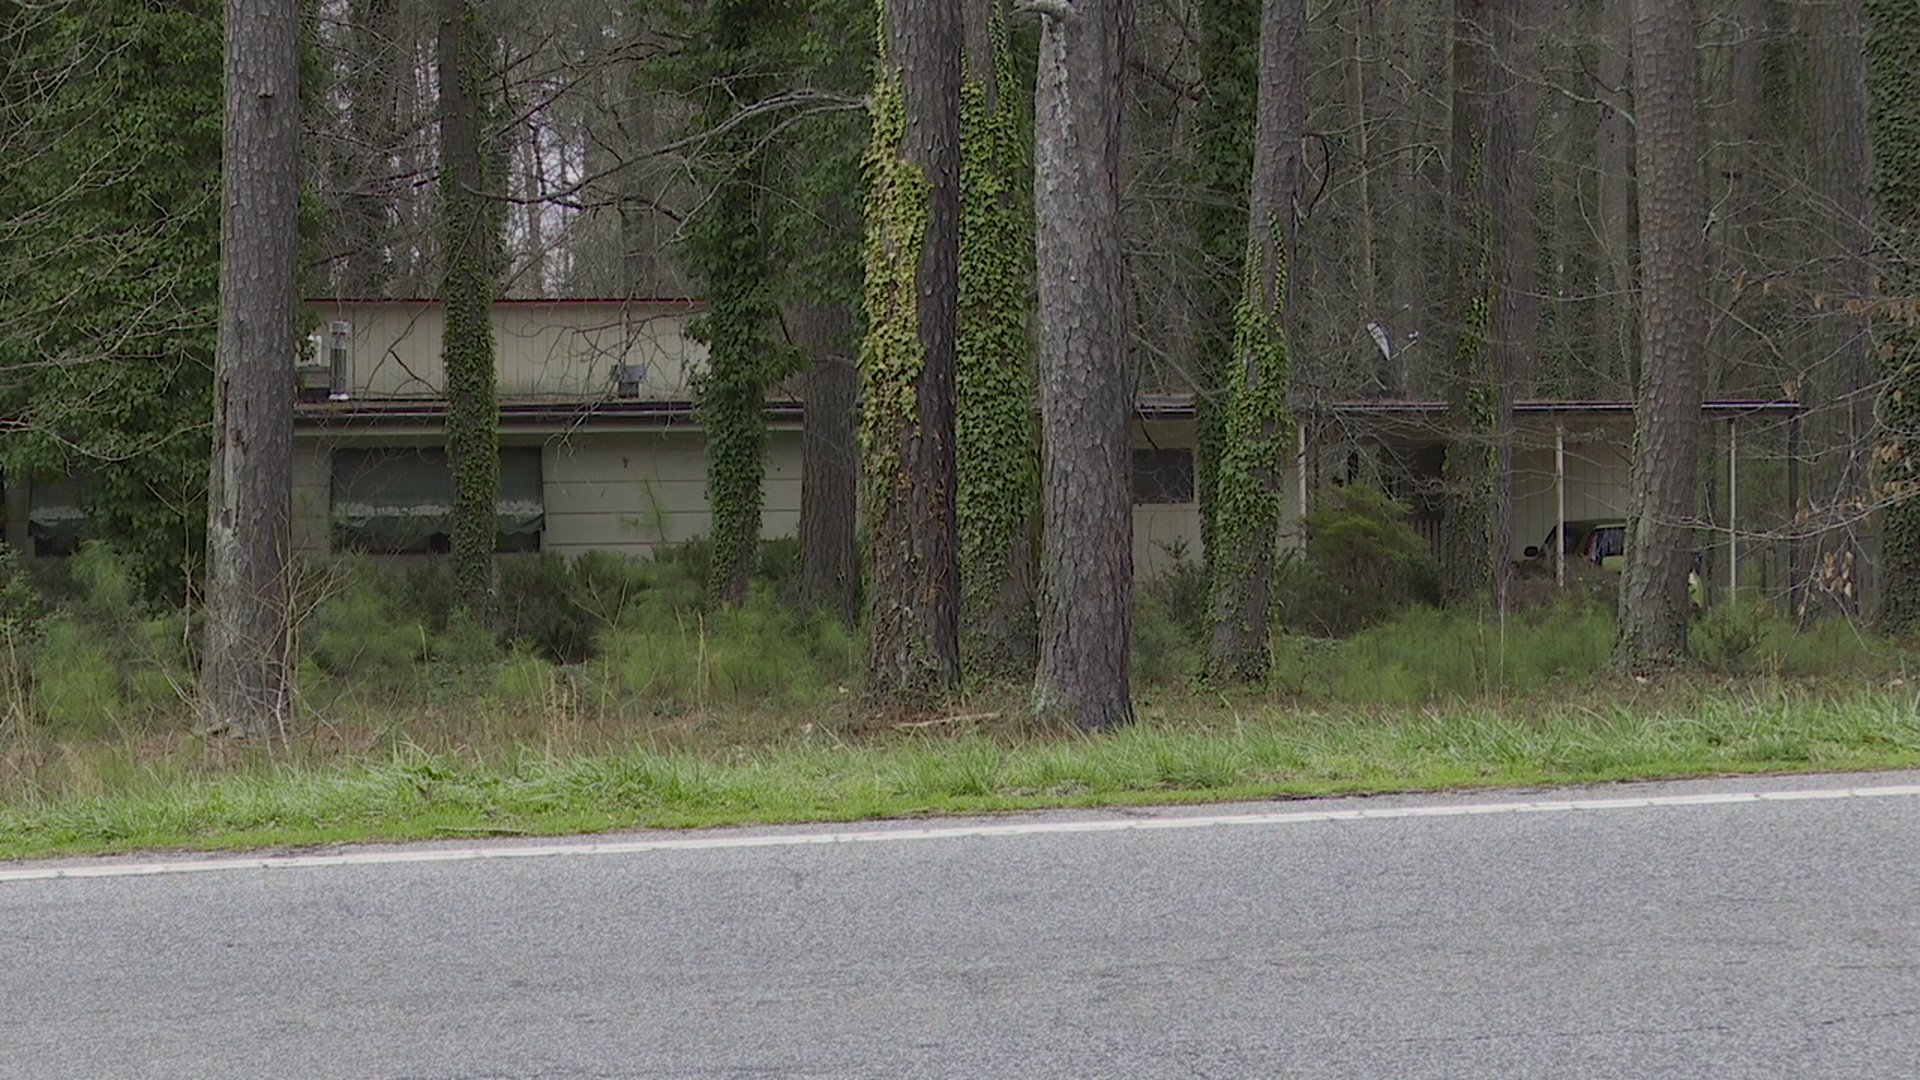 New details emerge in fatal deputy-involved shooting in Jamestown